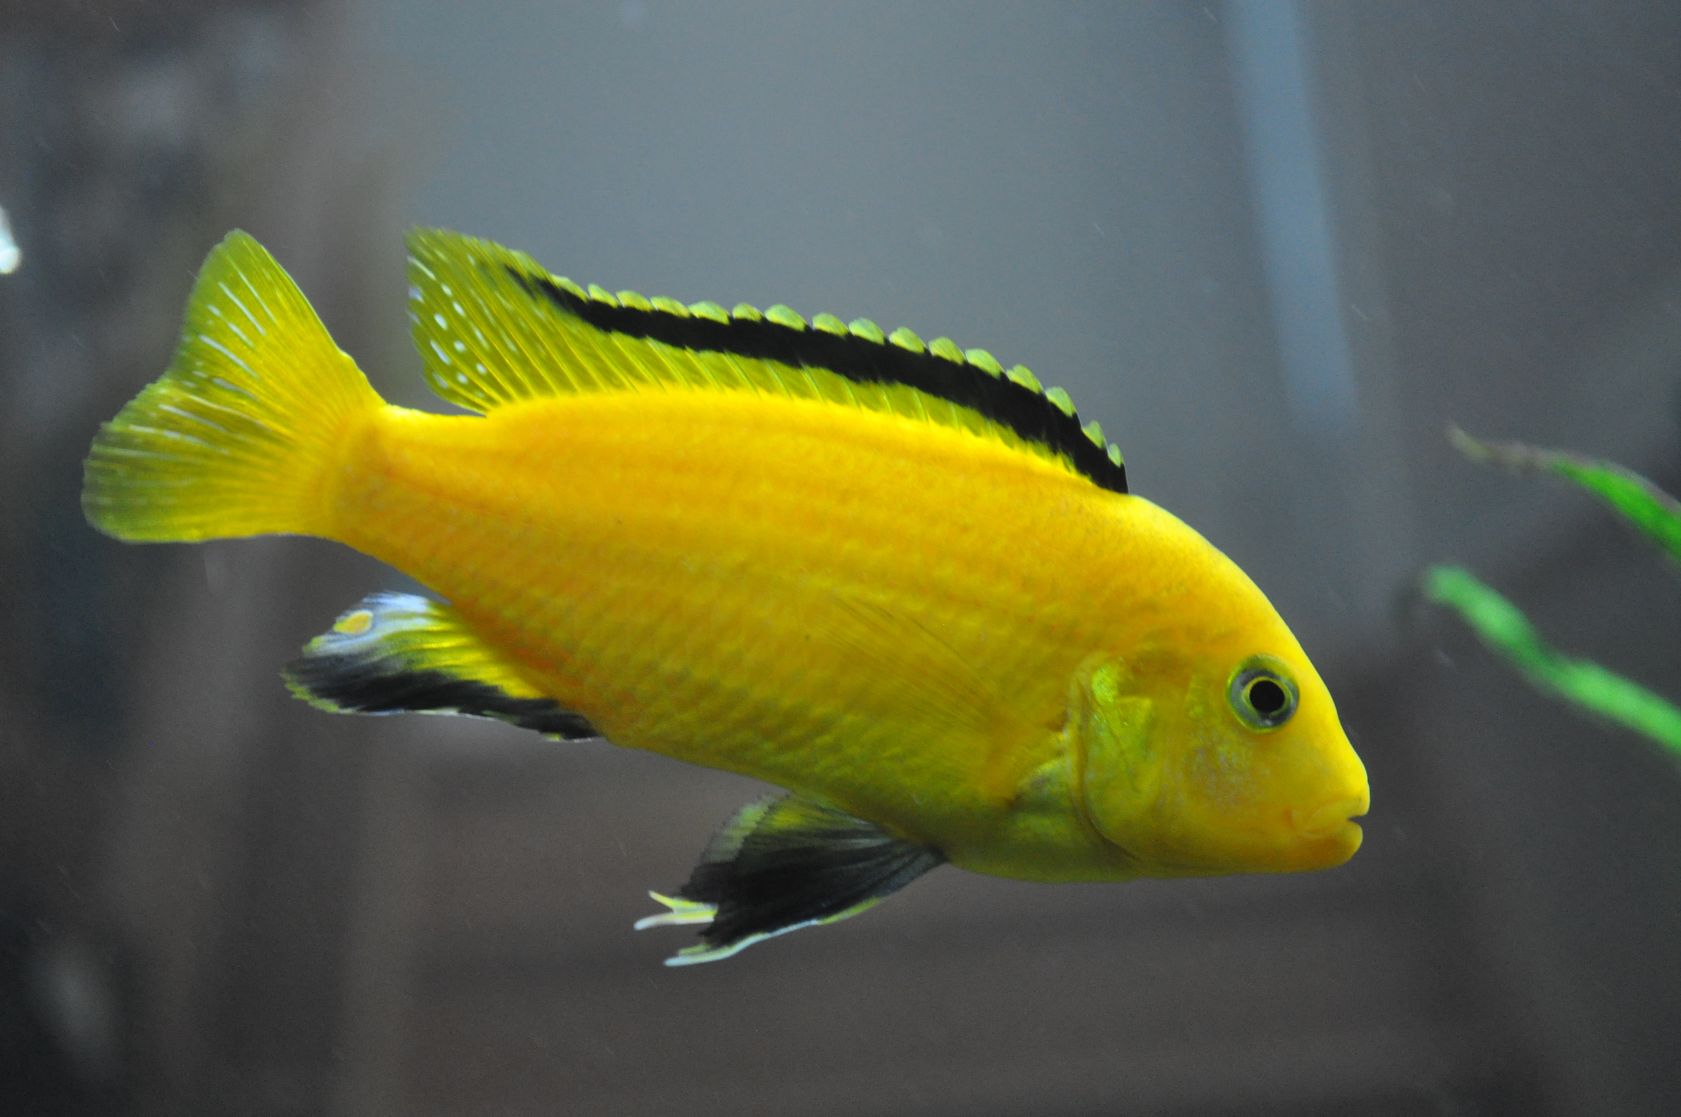 Labidochromis Caeruleus, Electric Yellow Cichlid